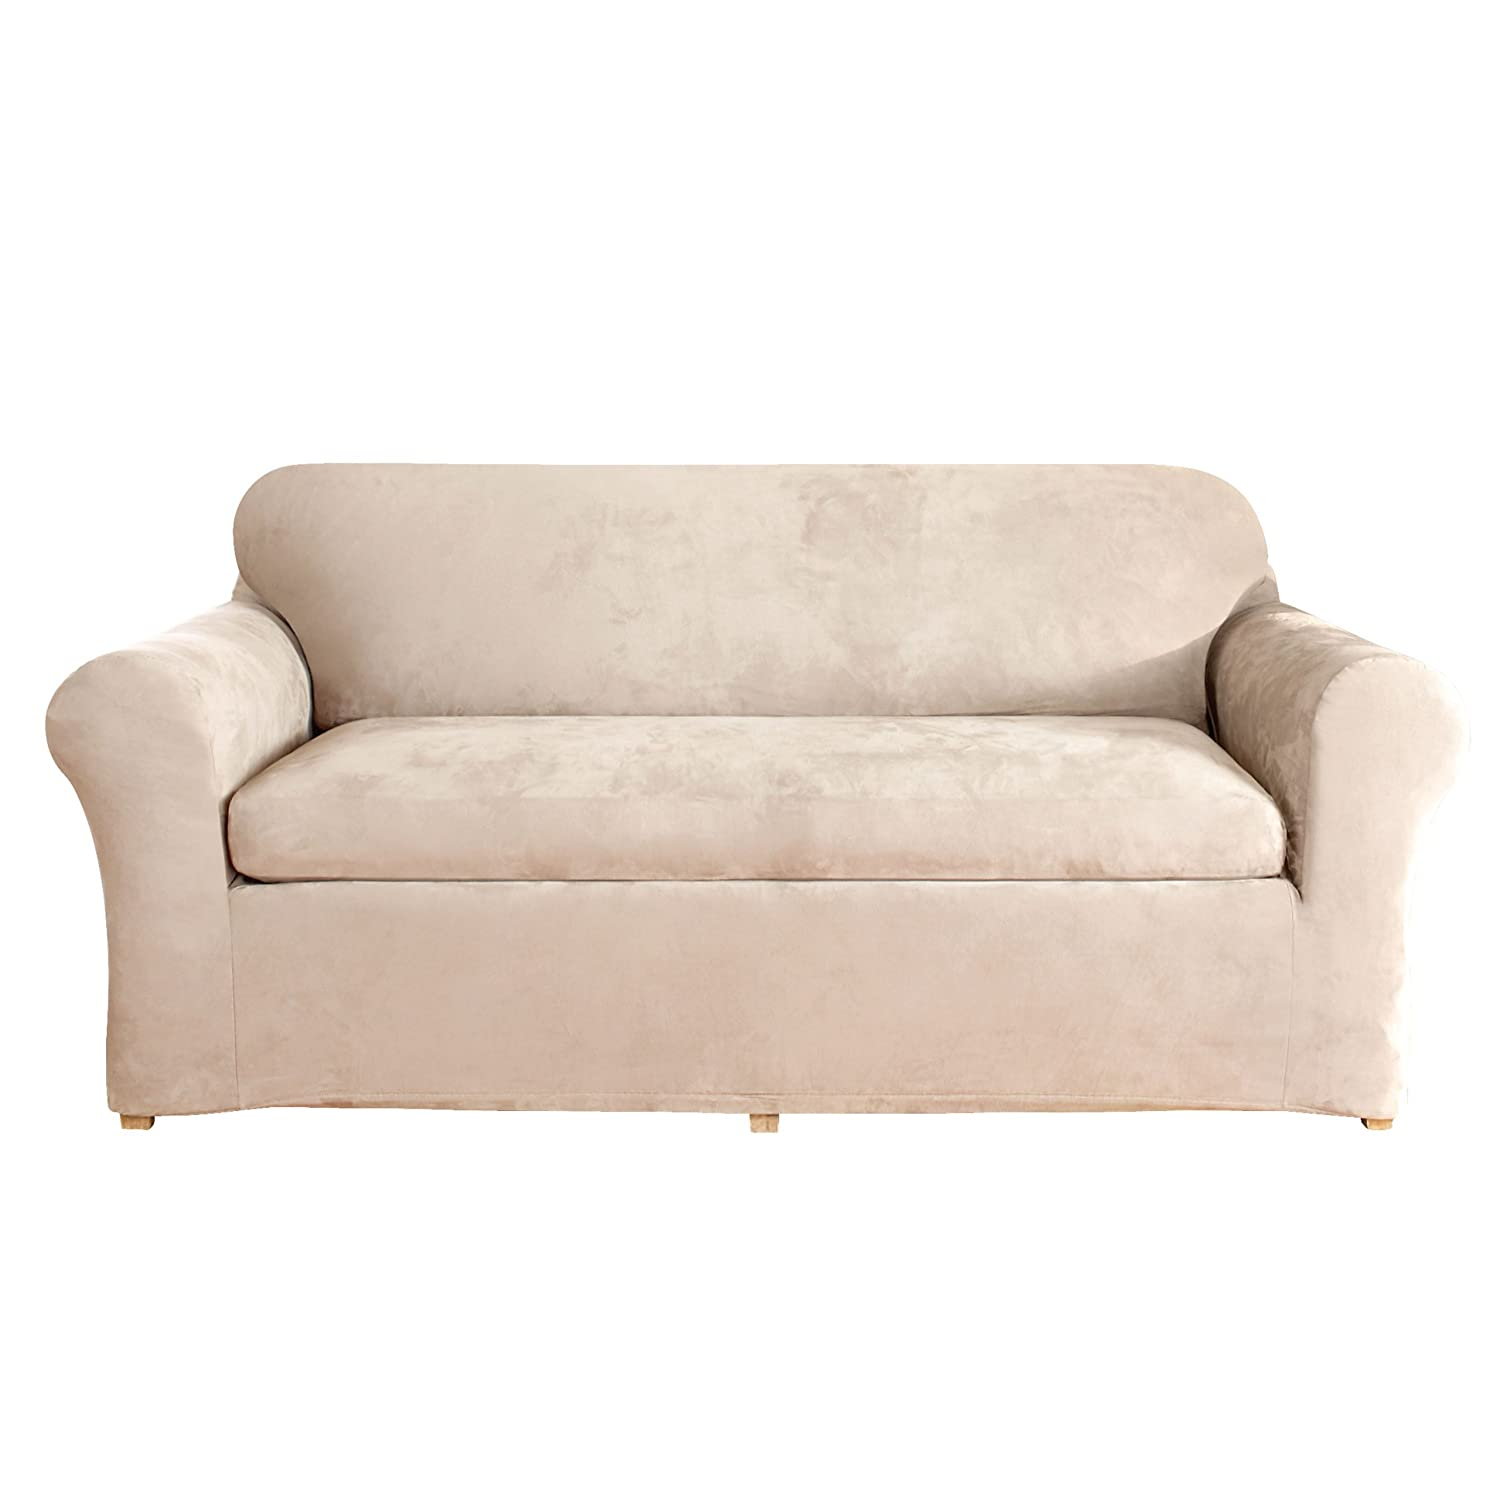 Amazon Sure Fit Stretch Suede Sofa Slipcover Taupe